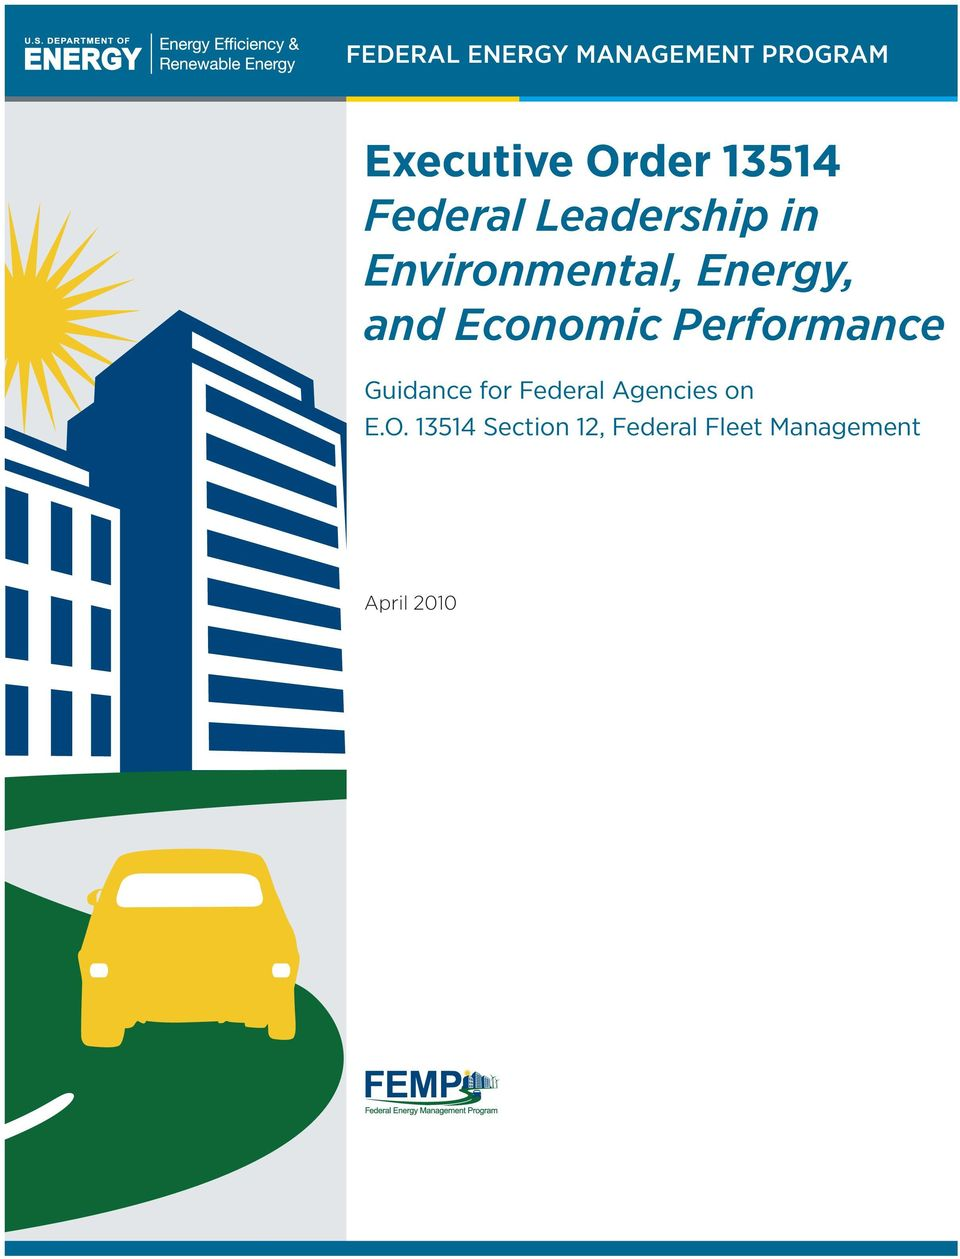 Economic Performance Guidance for Federal Agencies on